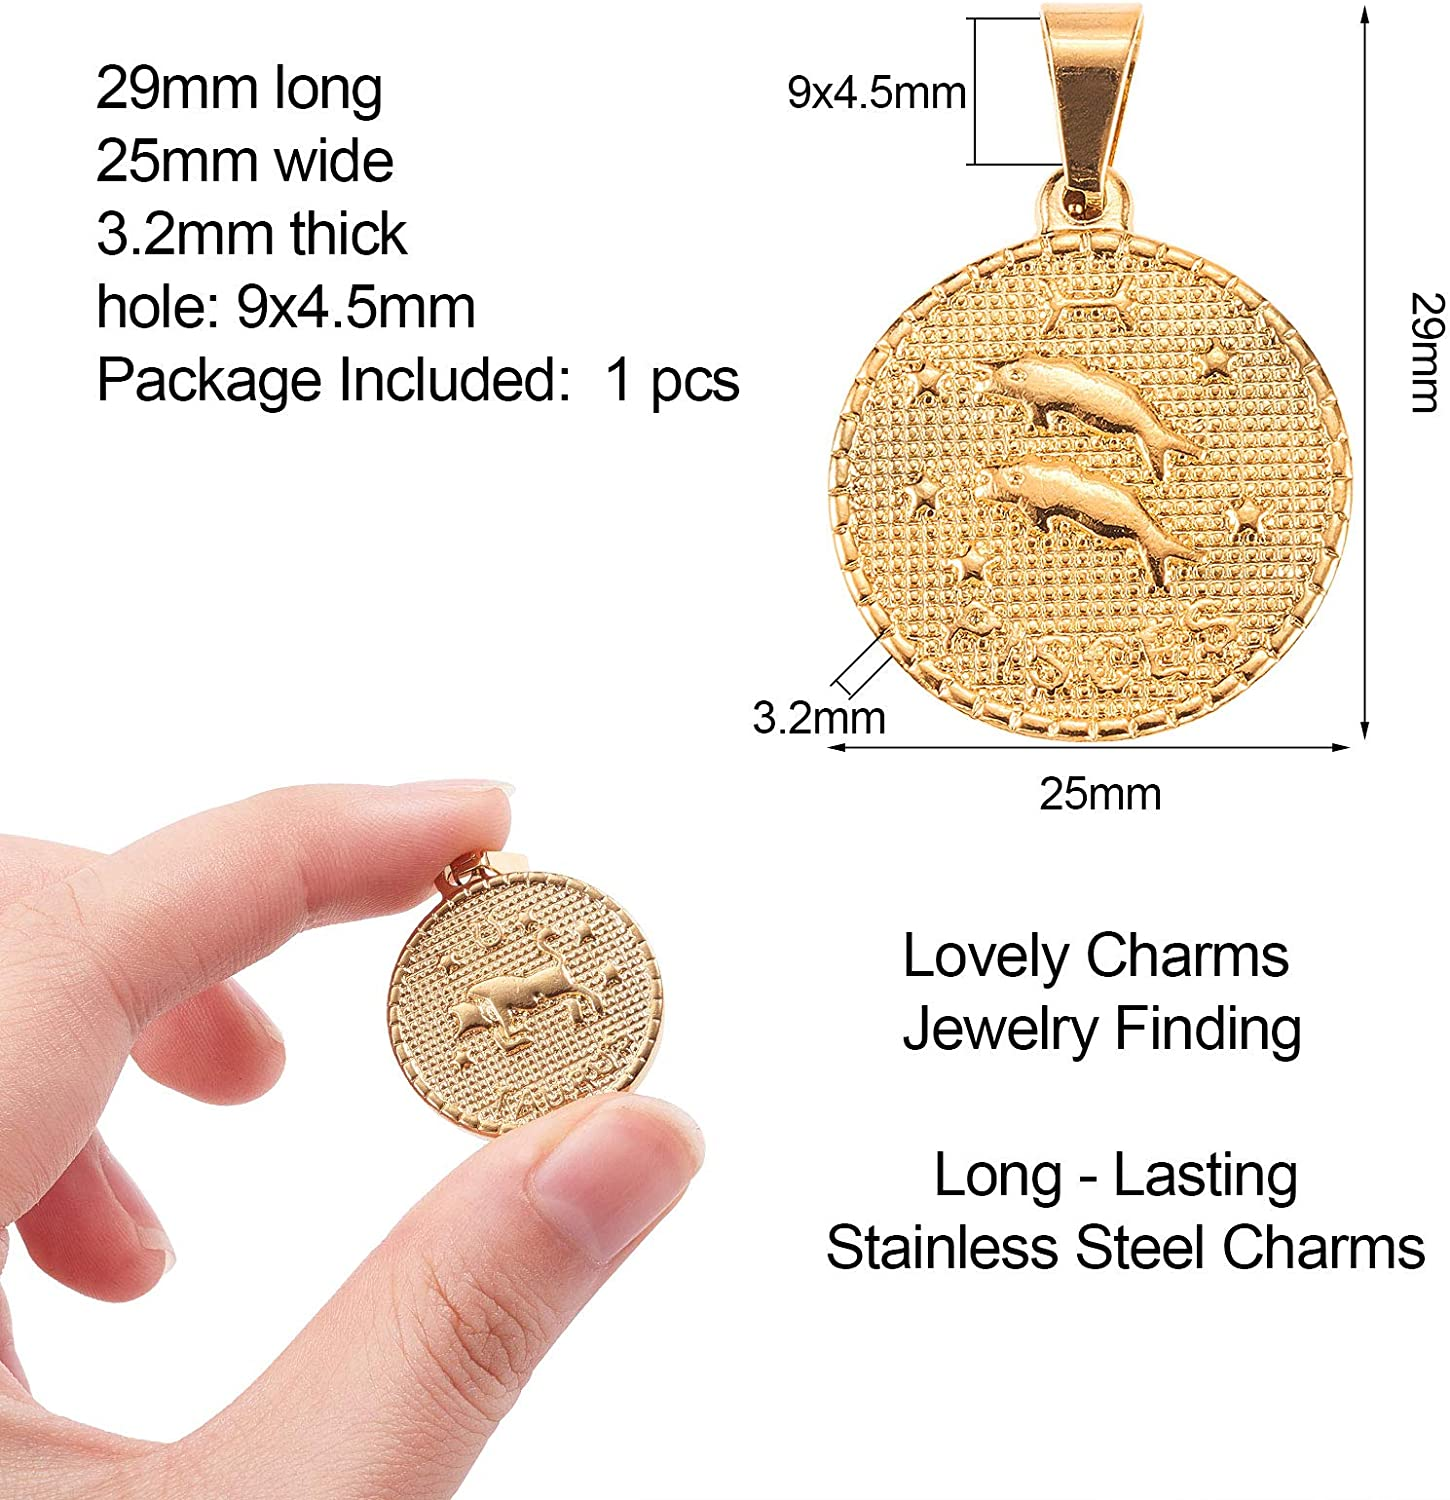 DanLingJewelry 100Pcs 304 Stainless Steel Mixed Charms Pendants for DIY Jewelry Making and Crafting